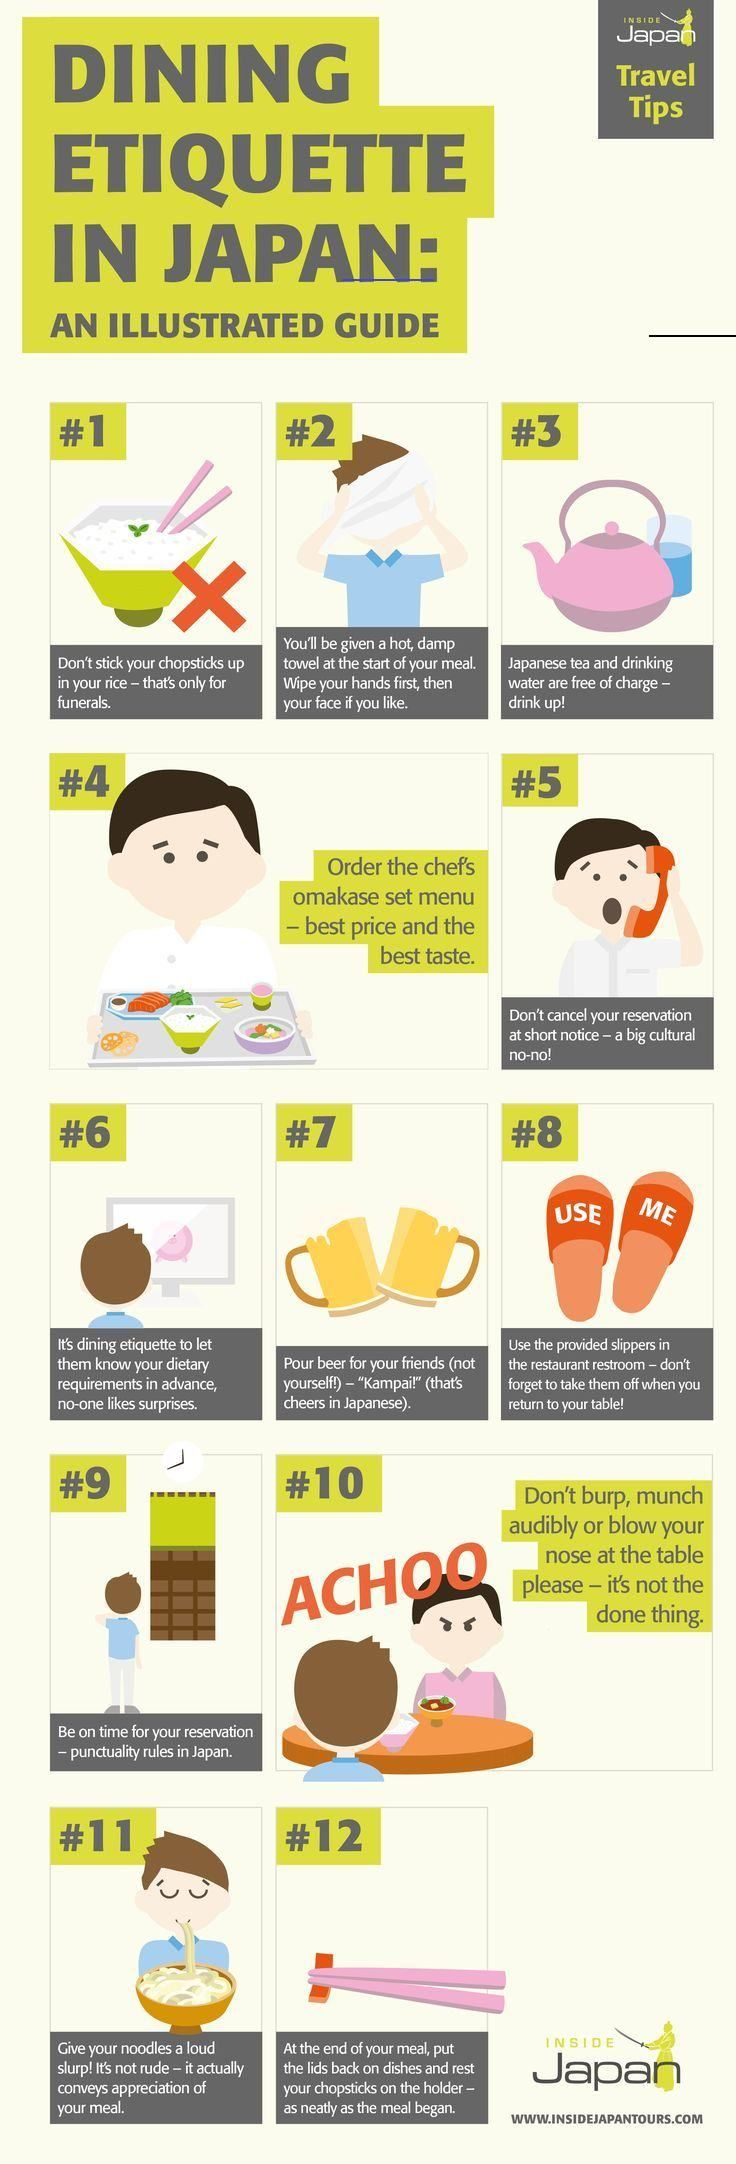 Dining etiquette in Japan: an illustrated guide - InsideJapan Tours This handy illustrated guide to dining etiquette in Japan will help you avoid any cultural faux pas. #JapaneseCuisine #Japan #Dining #EatingInJapan #JapaneseEtiquette #JapaneseCulture<br> Dining etiquette in Japan: Did you know that cancelling a dinner reservation is frowned upon? This illustrated guide will help you avoid dining faux pas.